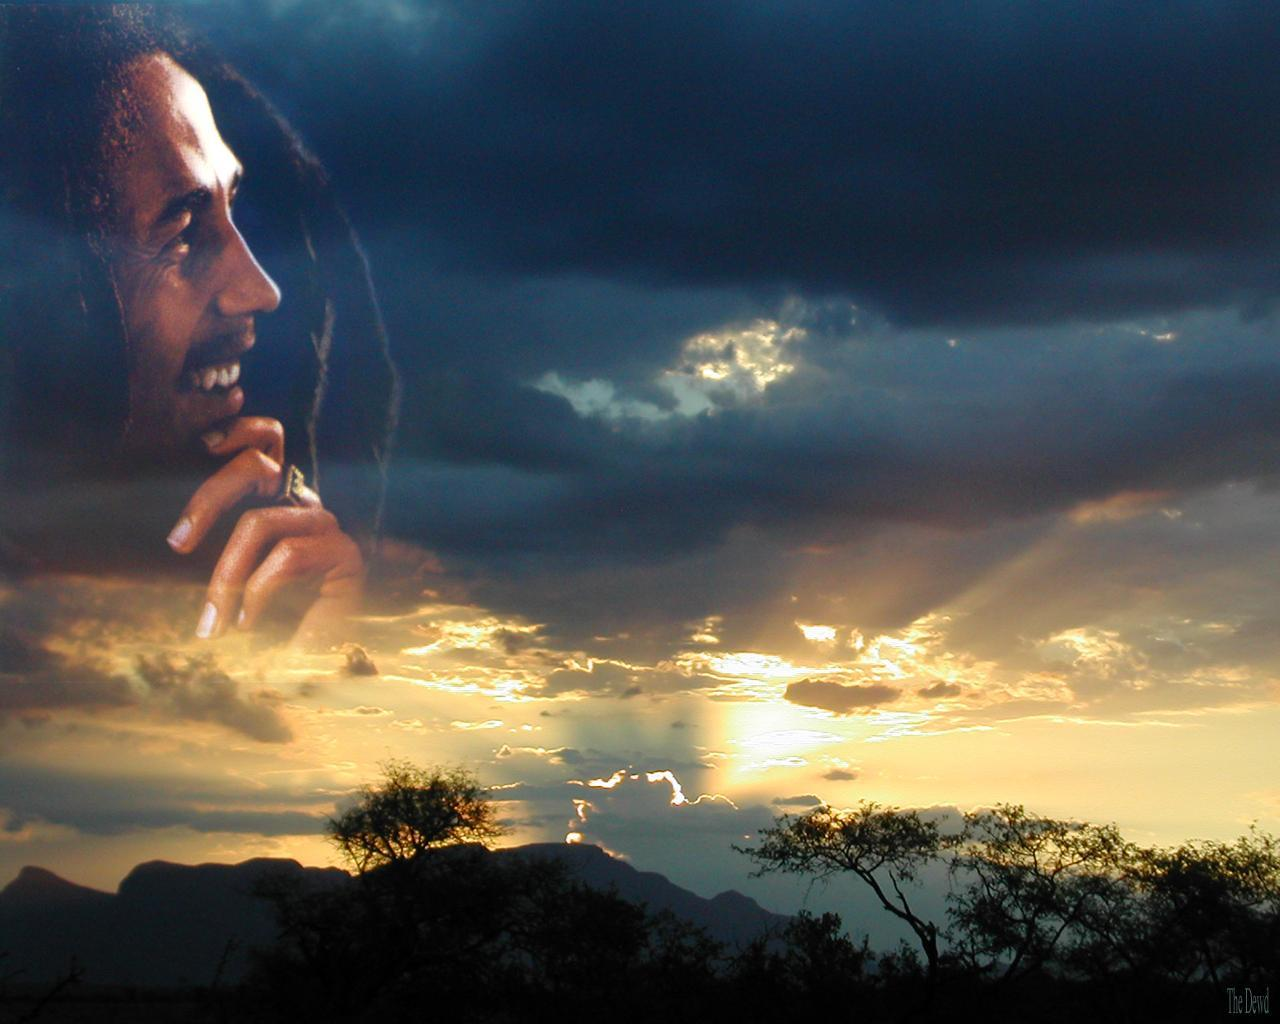 Bob marley Wallpapers. Photos, images, Bob marley pictures (15593)